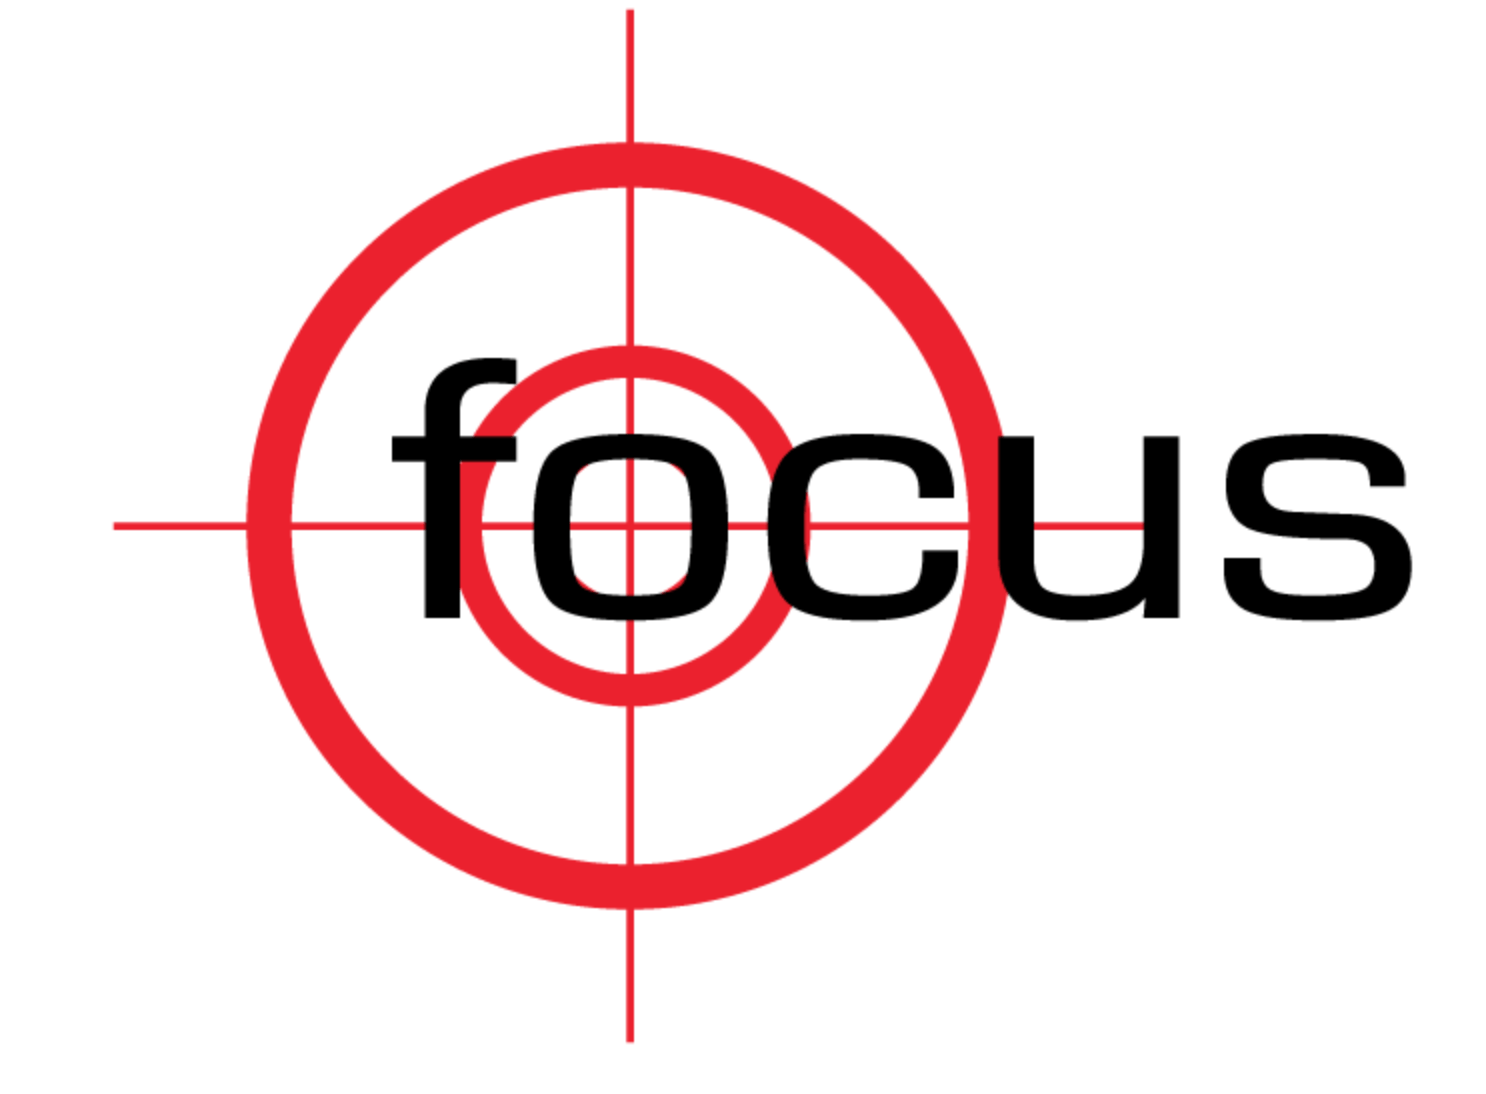 12 Study Tips To Improve Focus